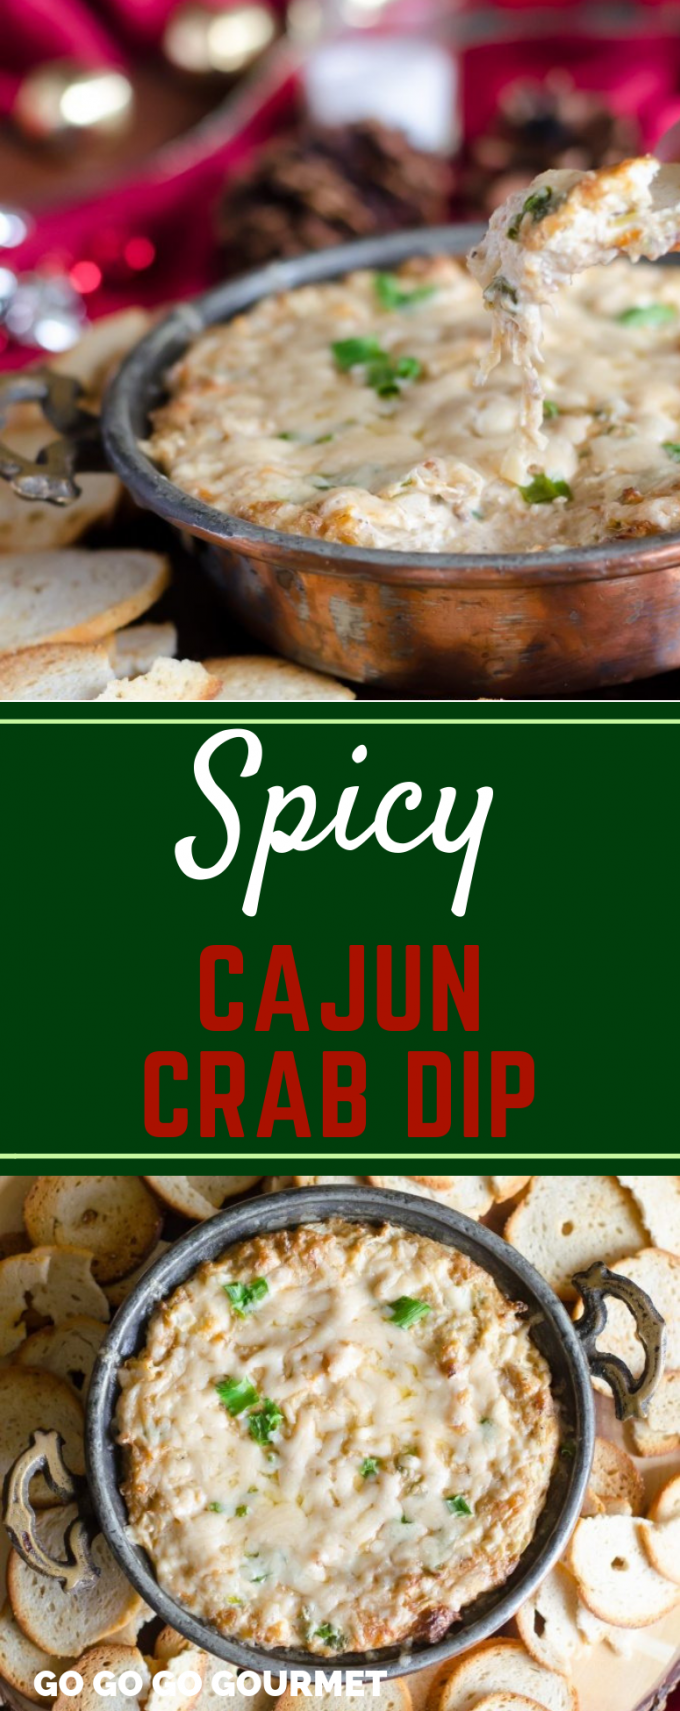 This easy Cajun Crab Dip recipe is spicy, but not too hot! It's ideal for serving as an appetizer during the holidays! #GoGoGoGourmet #SpicyCajunCrabDip #HolidayAppetizers #ChristmasAppetizers #HolidayRecipes